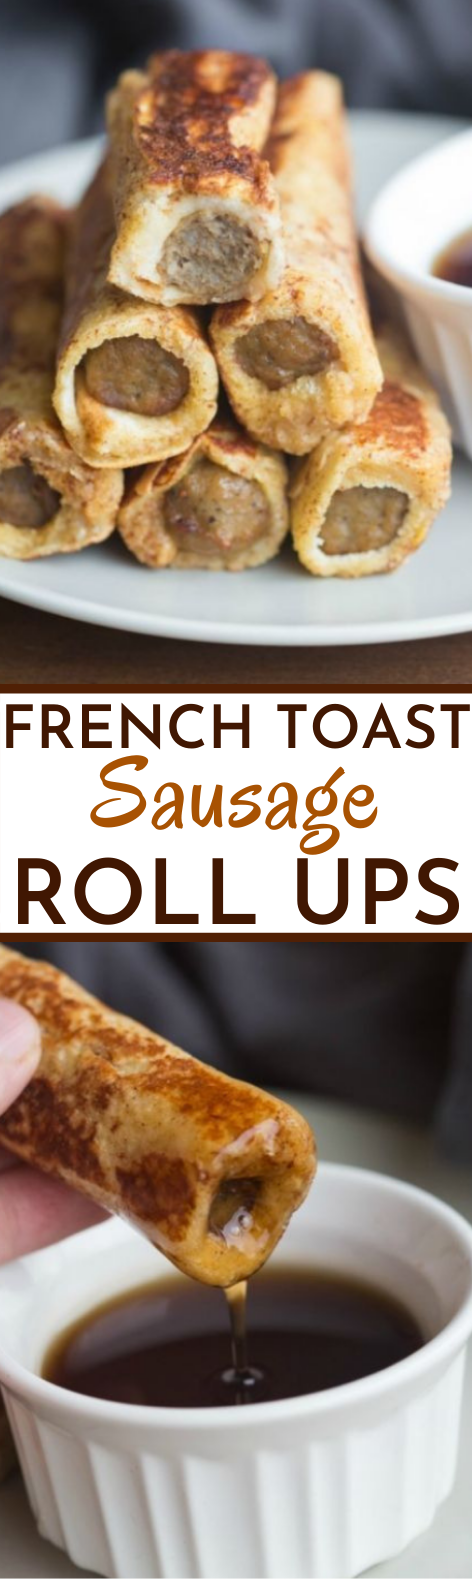 French Toast Sausage Roll-Ups #appetizers #breakfast #easy #quick #recipes